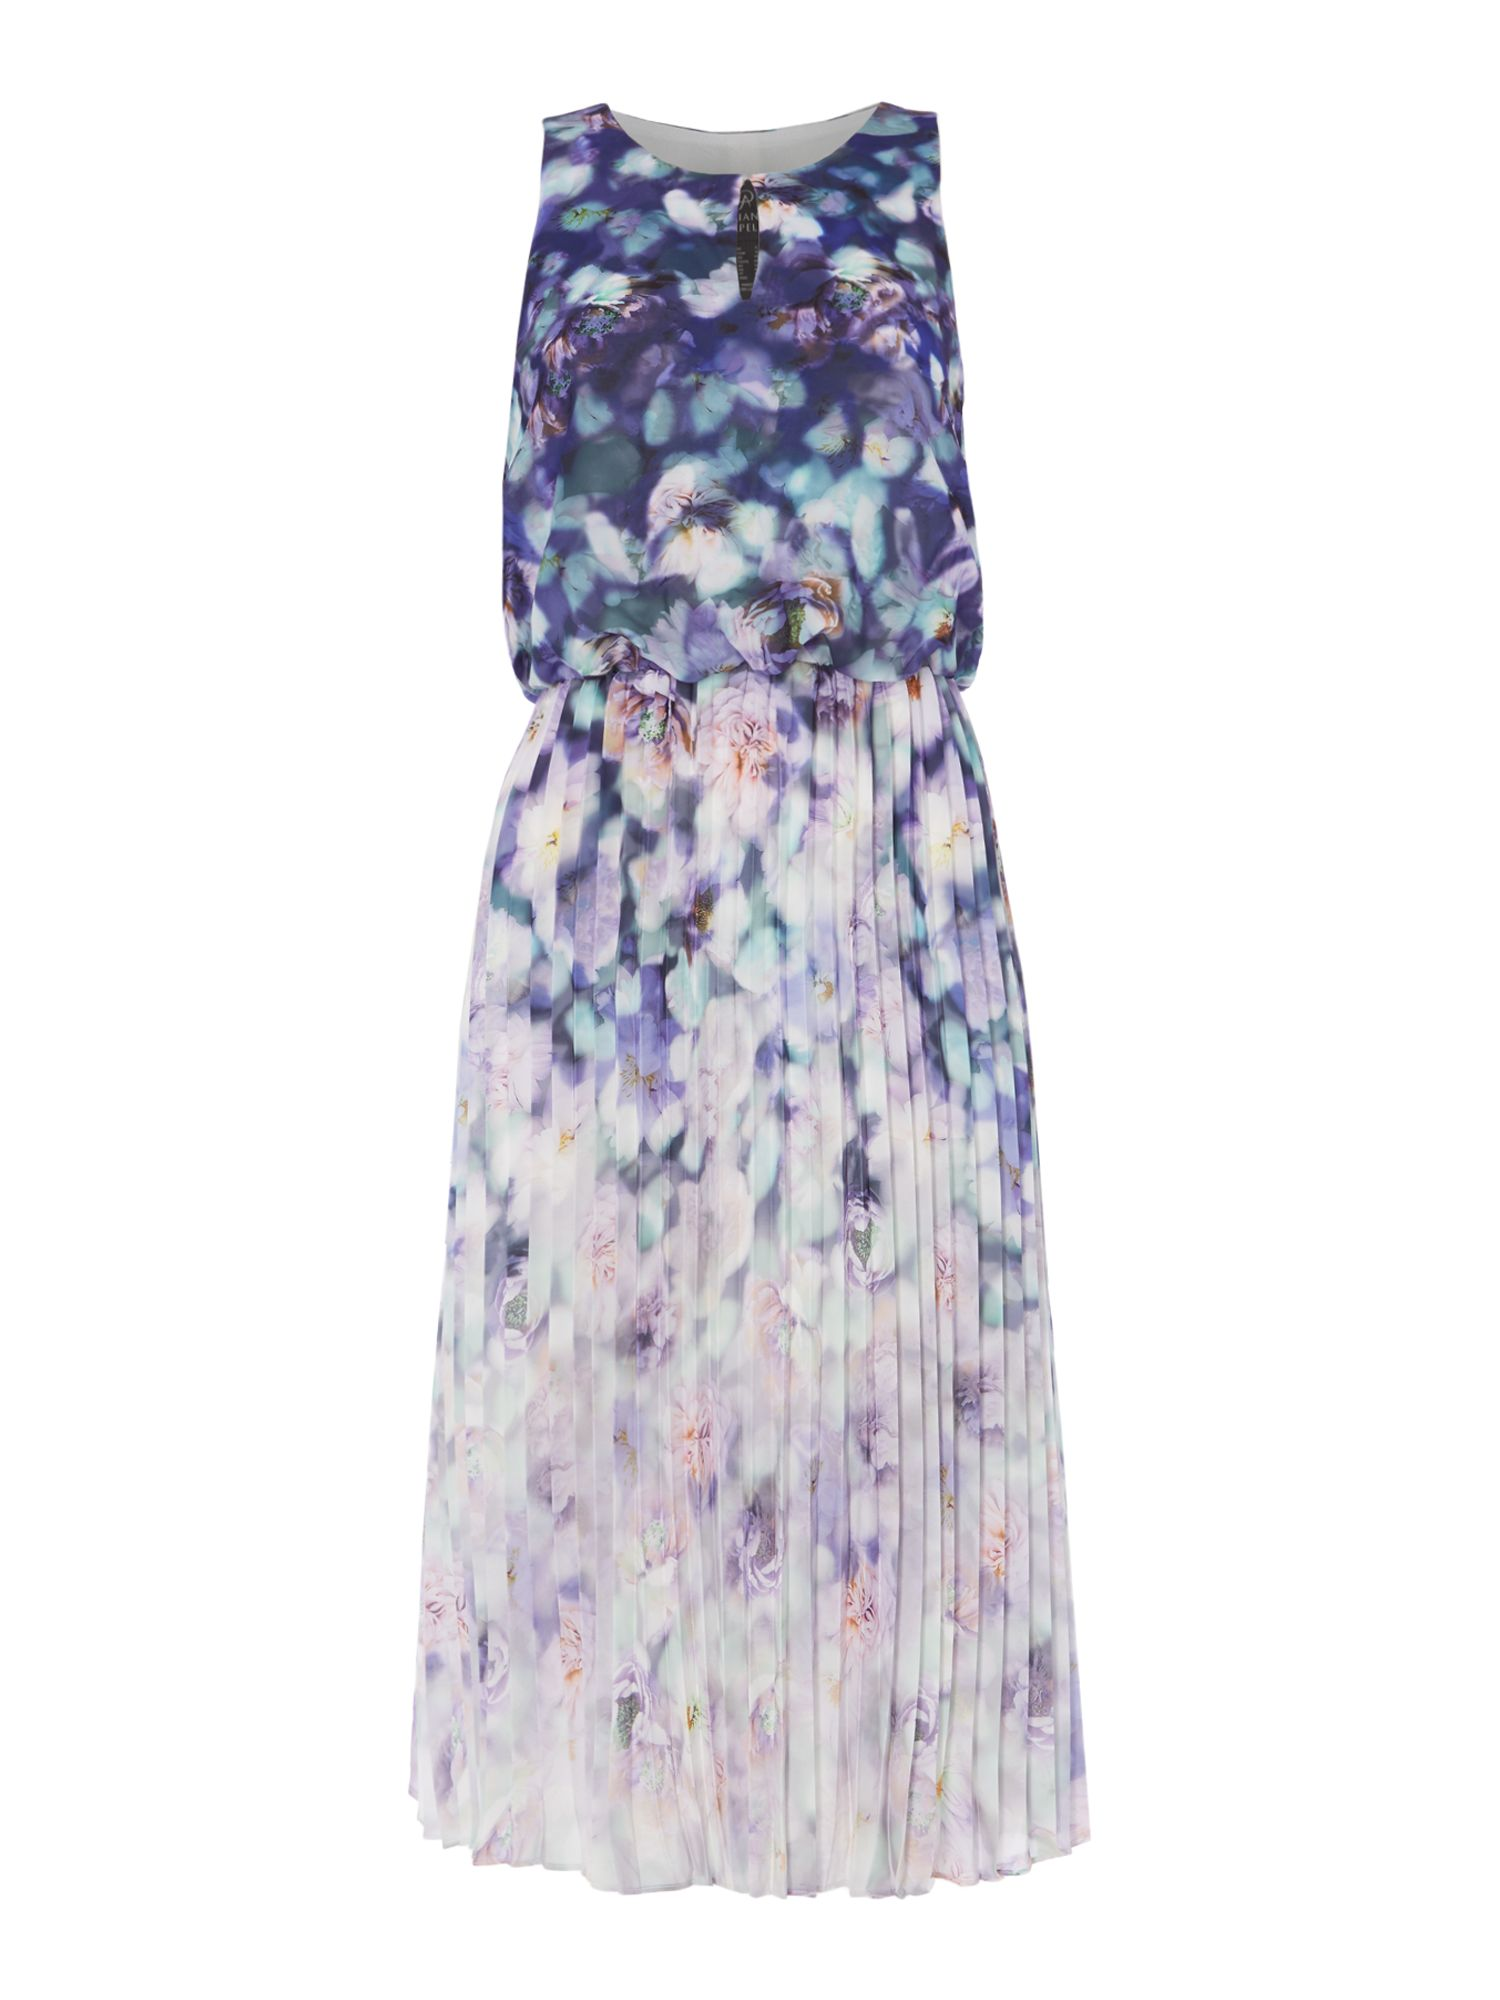 Adrianna Papell Sleevless frill front v neck floral dress, Purple